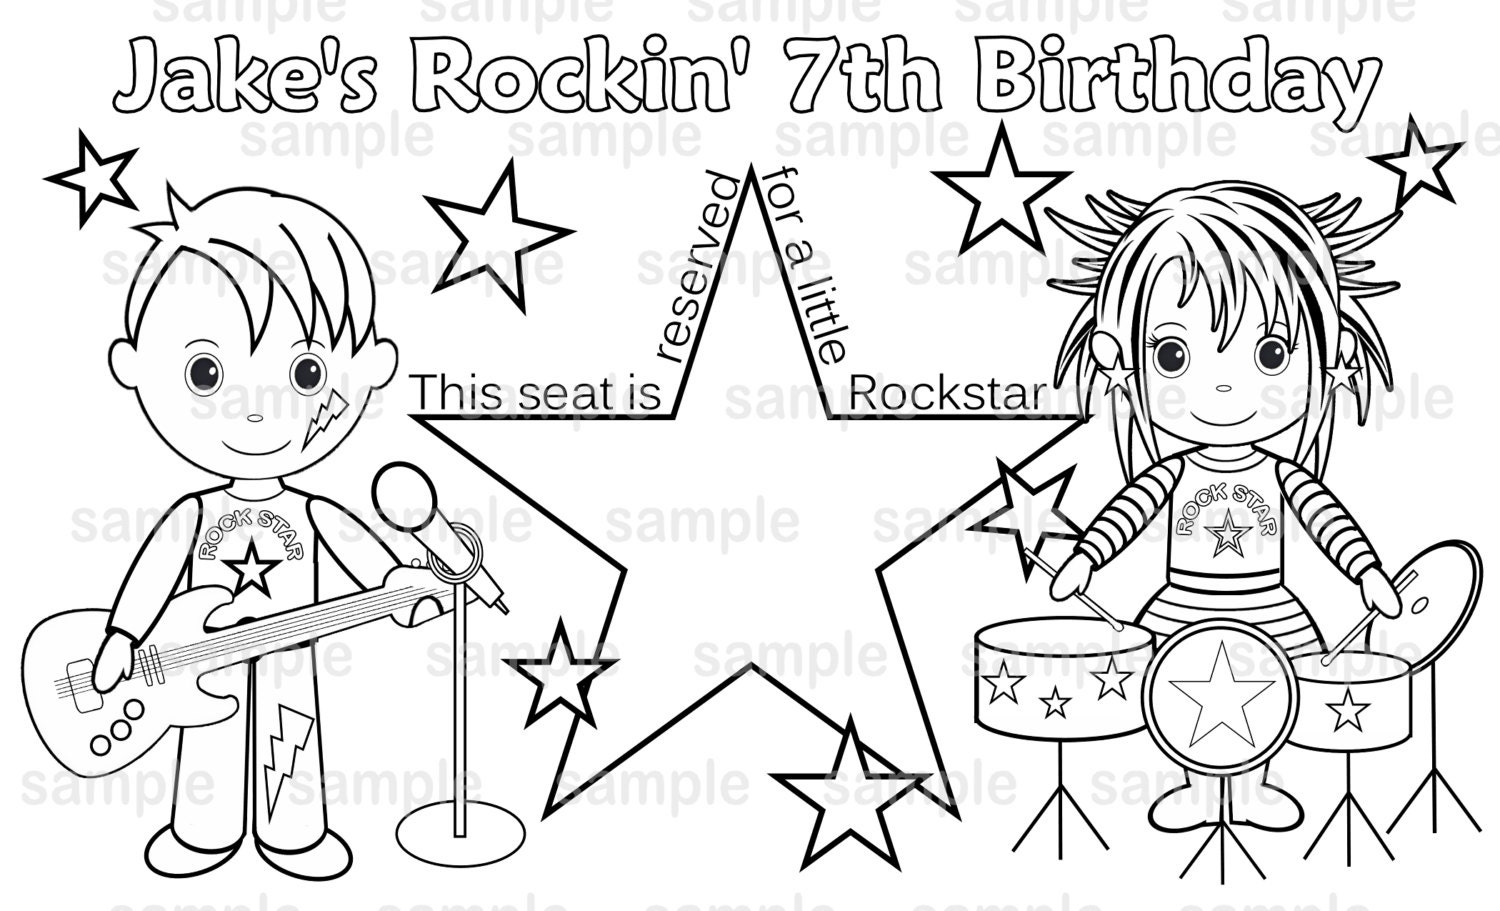 rockstar coloring pages printables | PRINTABLE Personalized Rockstar Diva Placemat Childrens